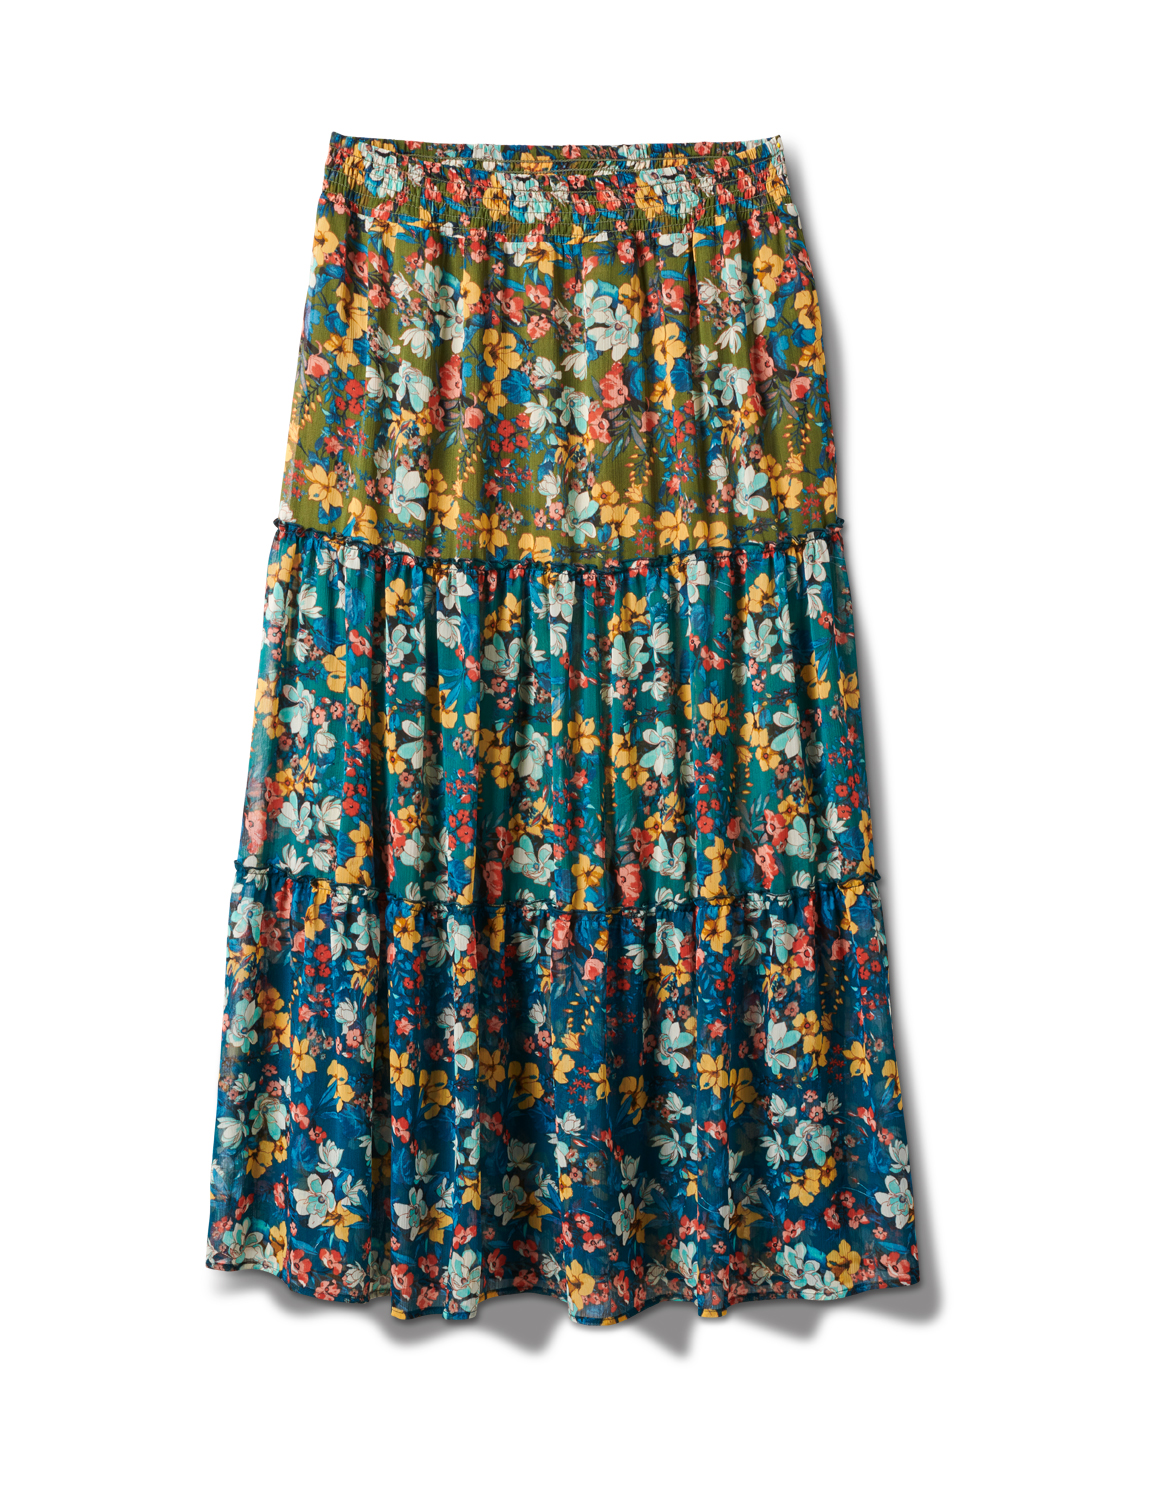 Plus 3 Tiered Maxi Skirt -Moroccan Blue - Front